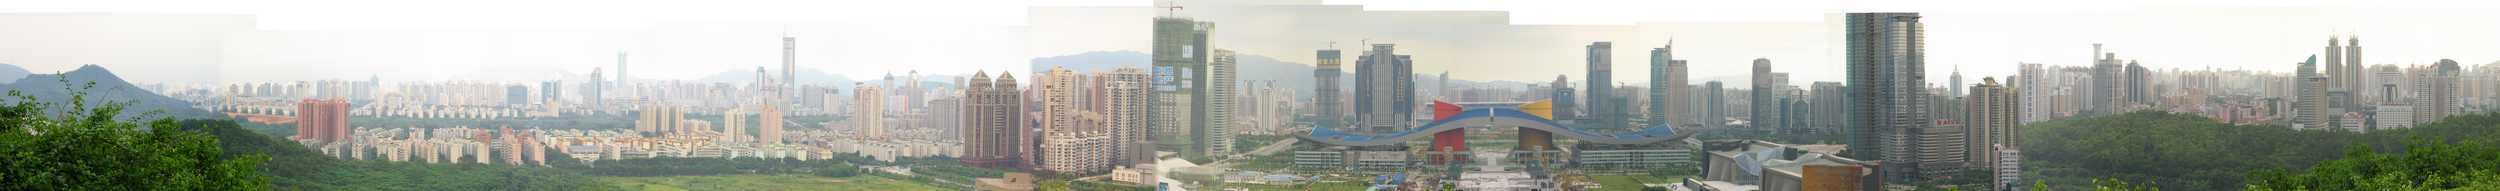 Shenzhen Panorama-altered.jpg